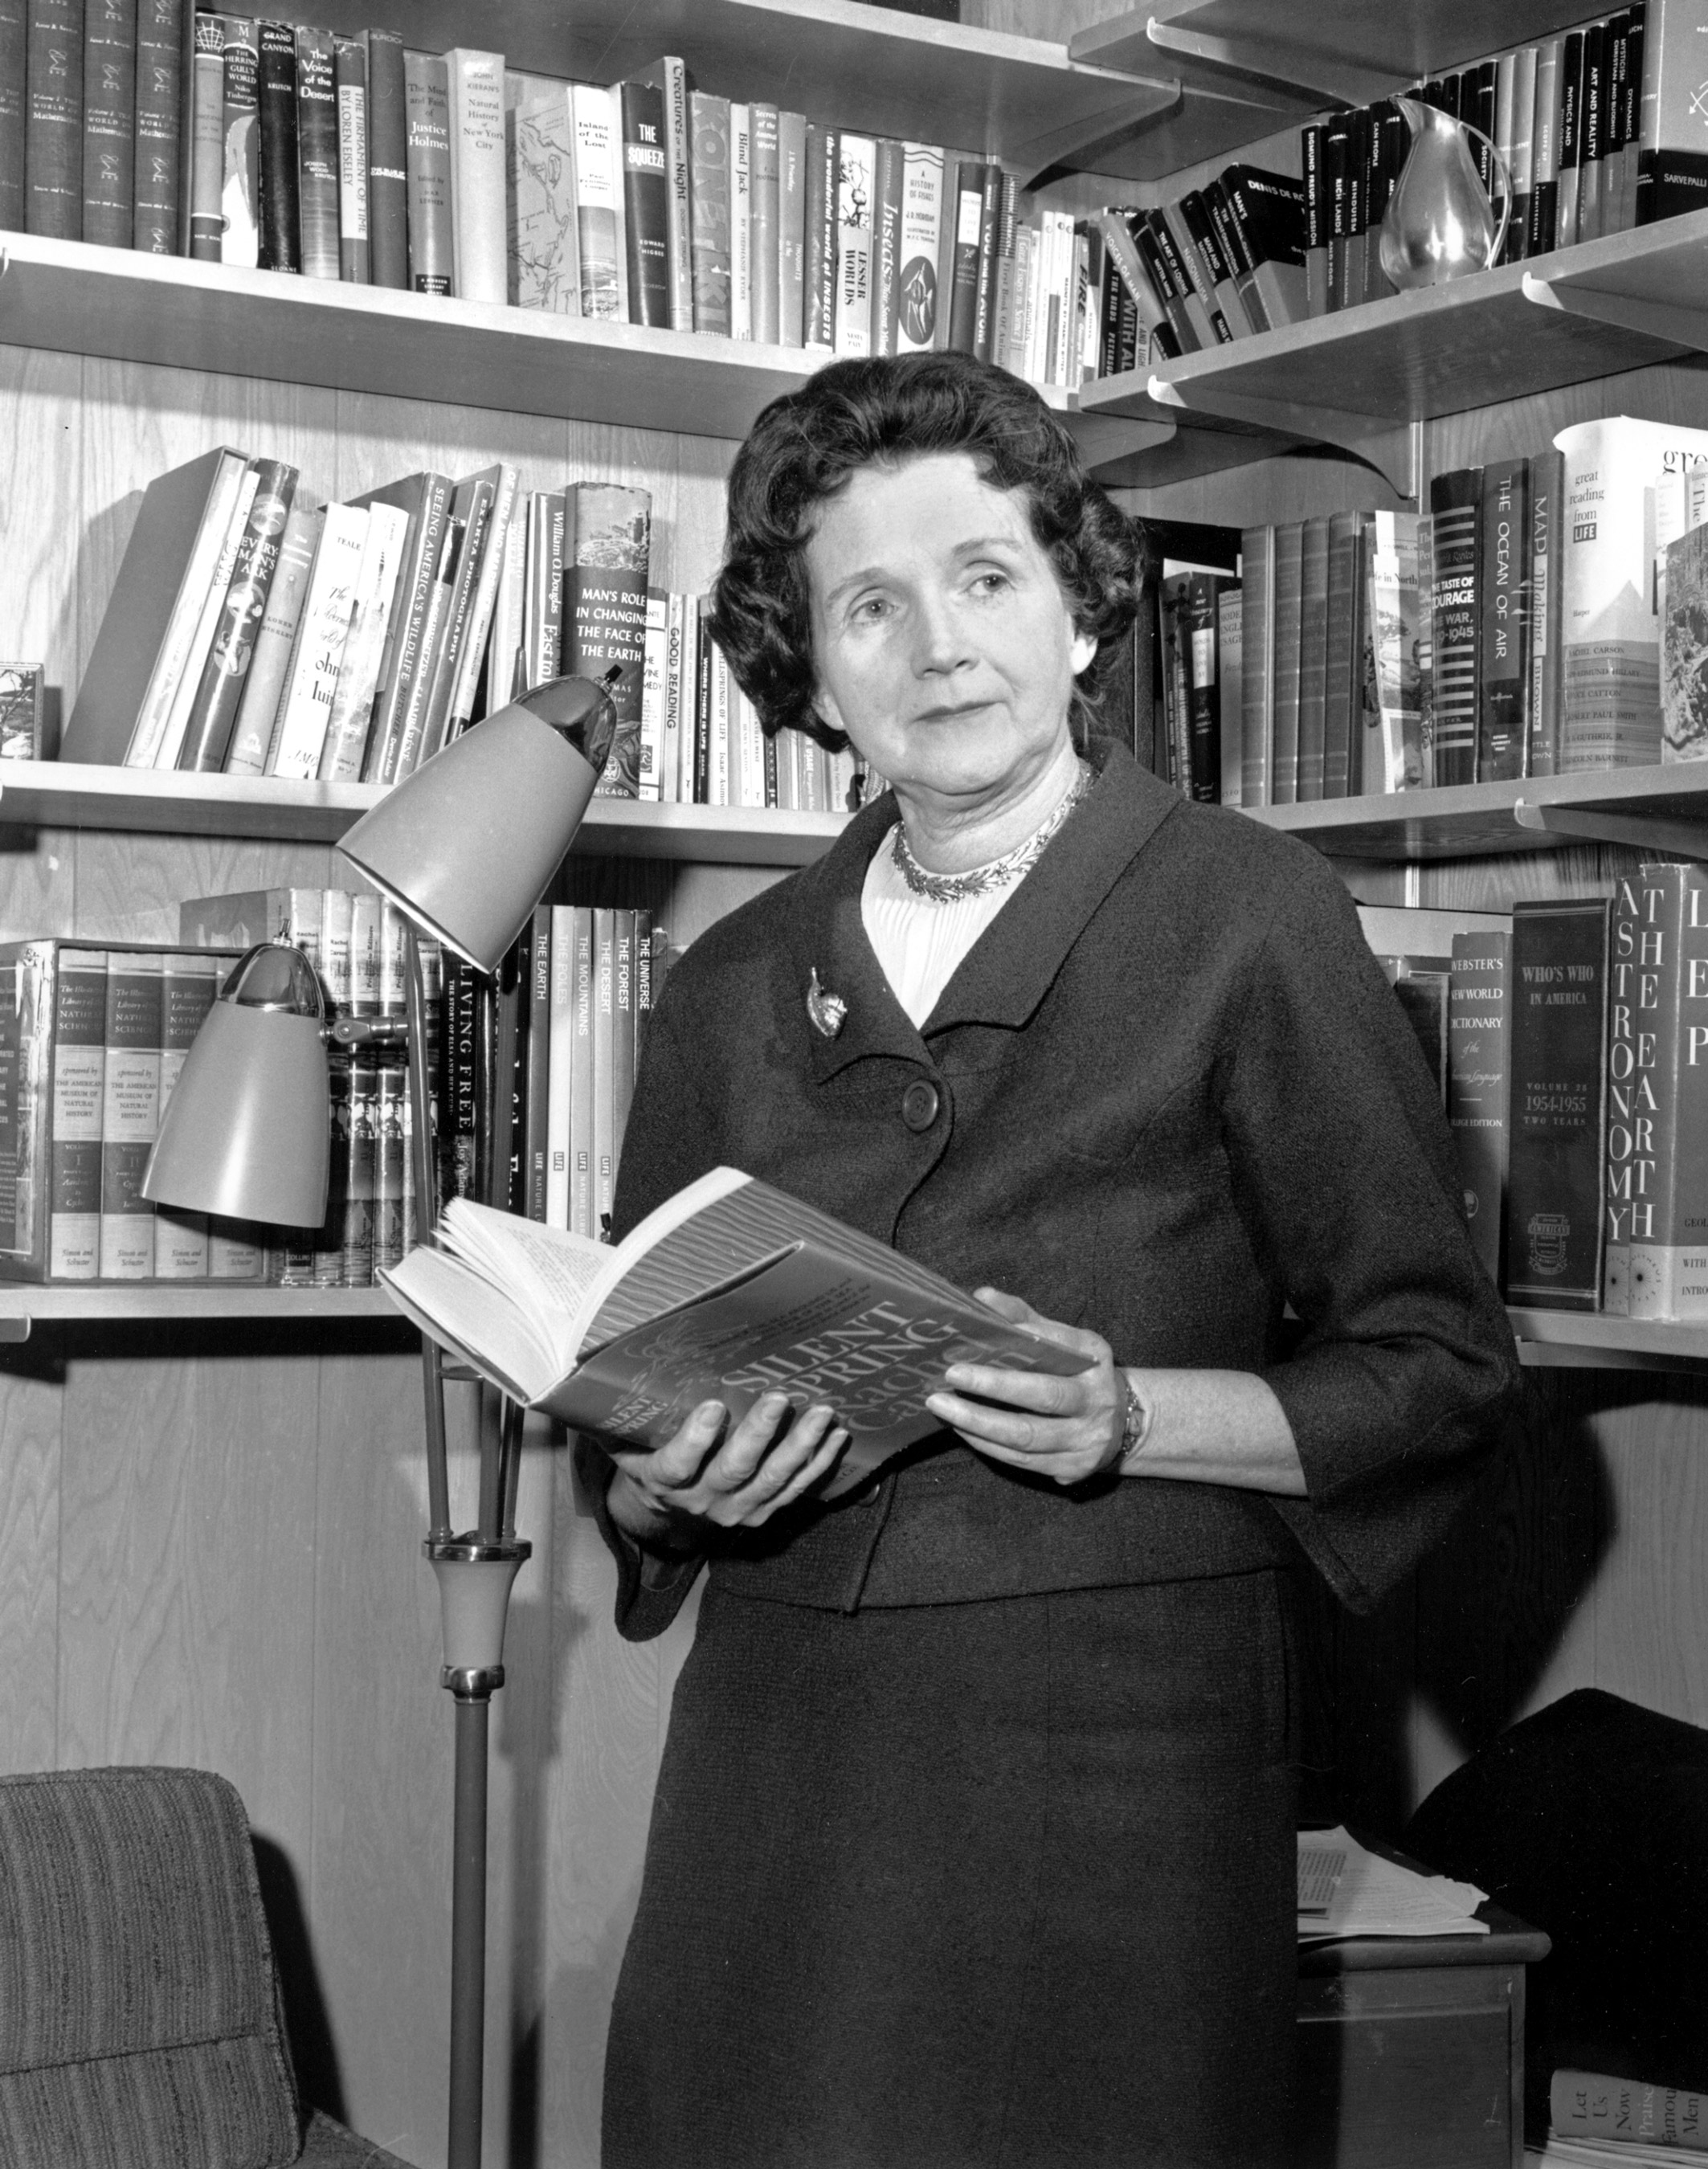 Image of Carson standing with Silent Spring in her hands